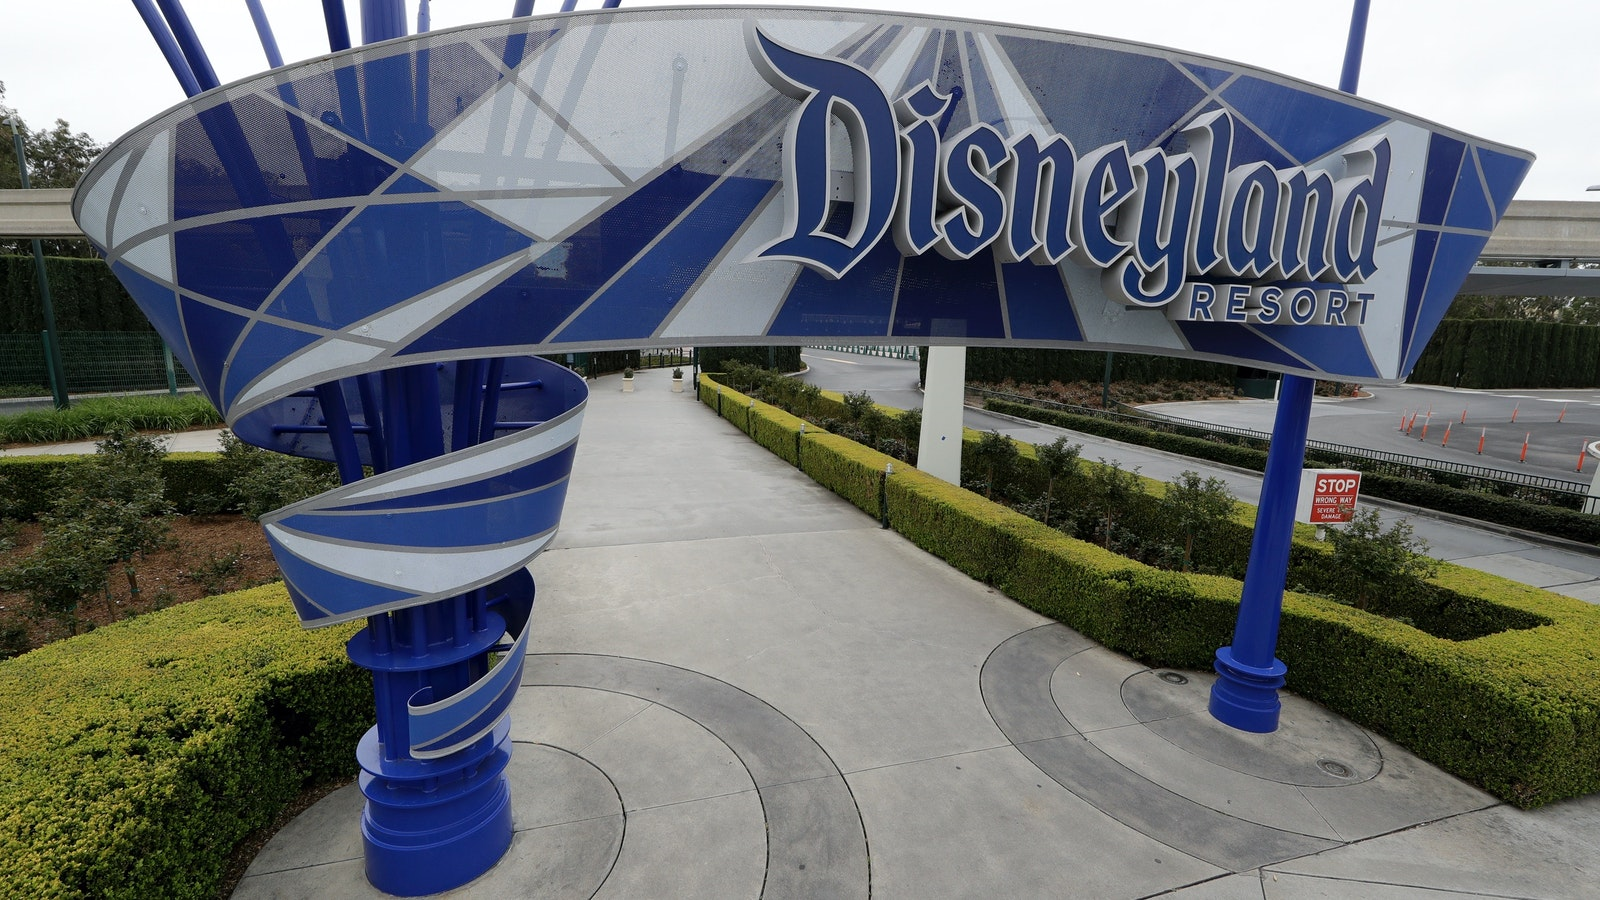 The entrance to Disneyland in Anaheim, Calif. resort last March when the coronavirus pandemic forced the park to close. Photo by AP